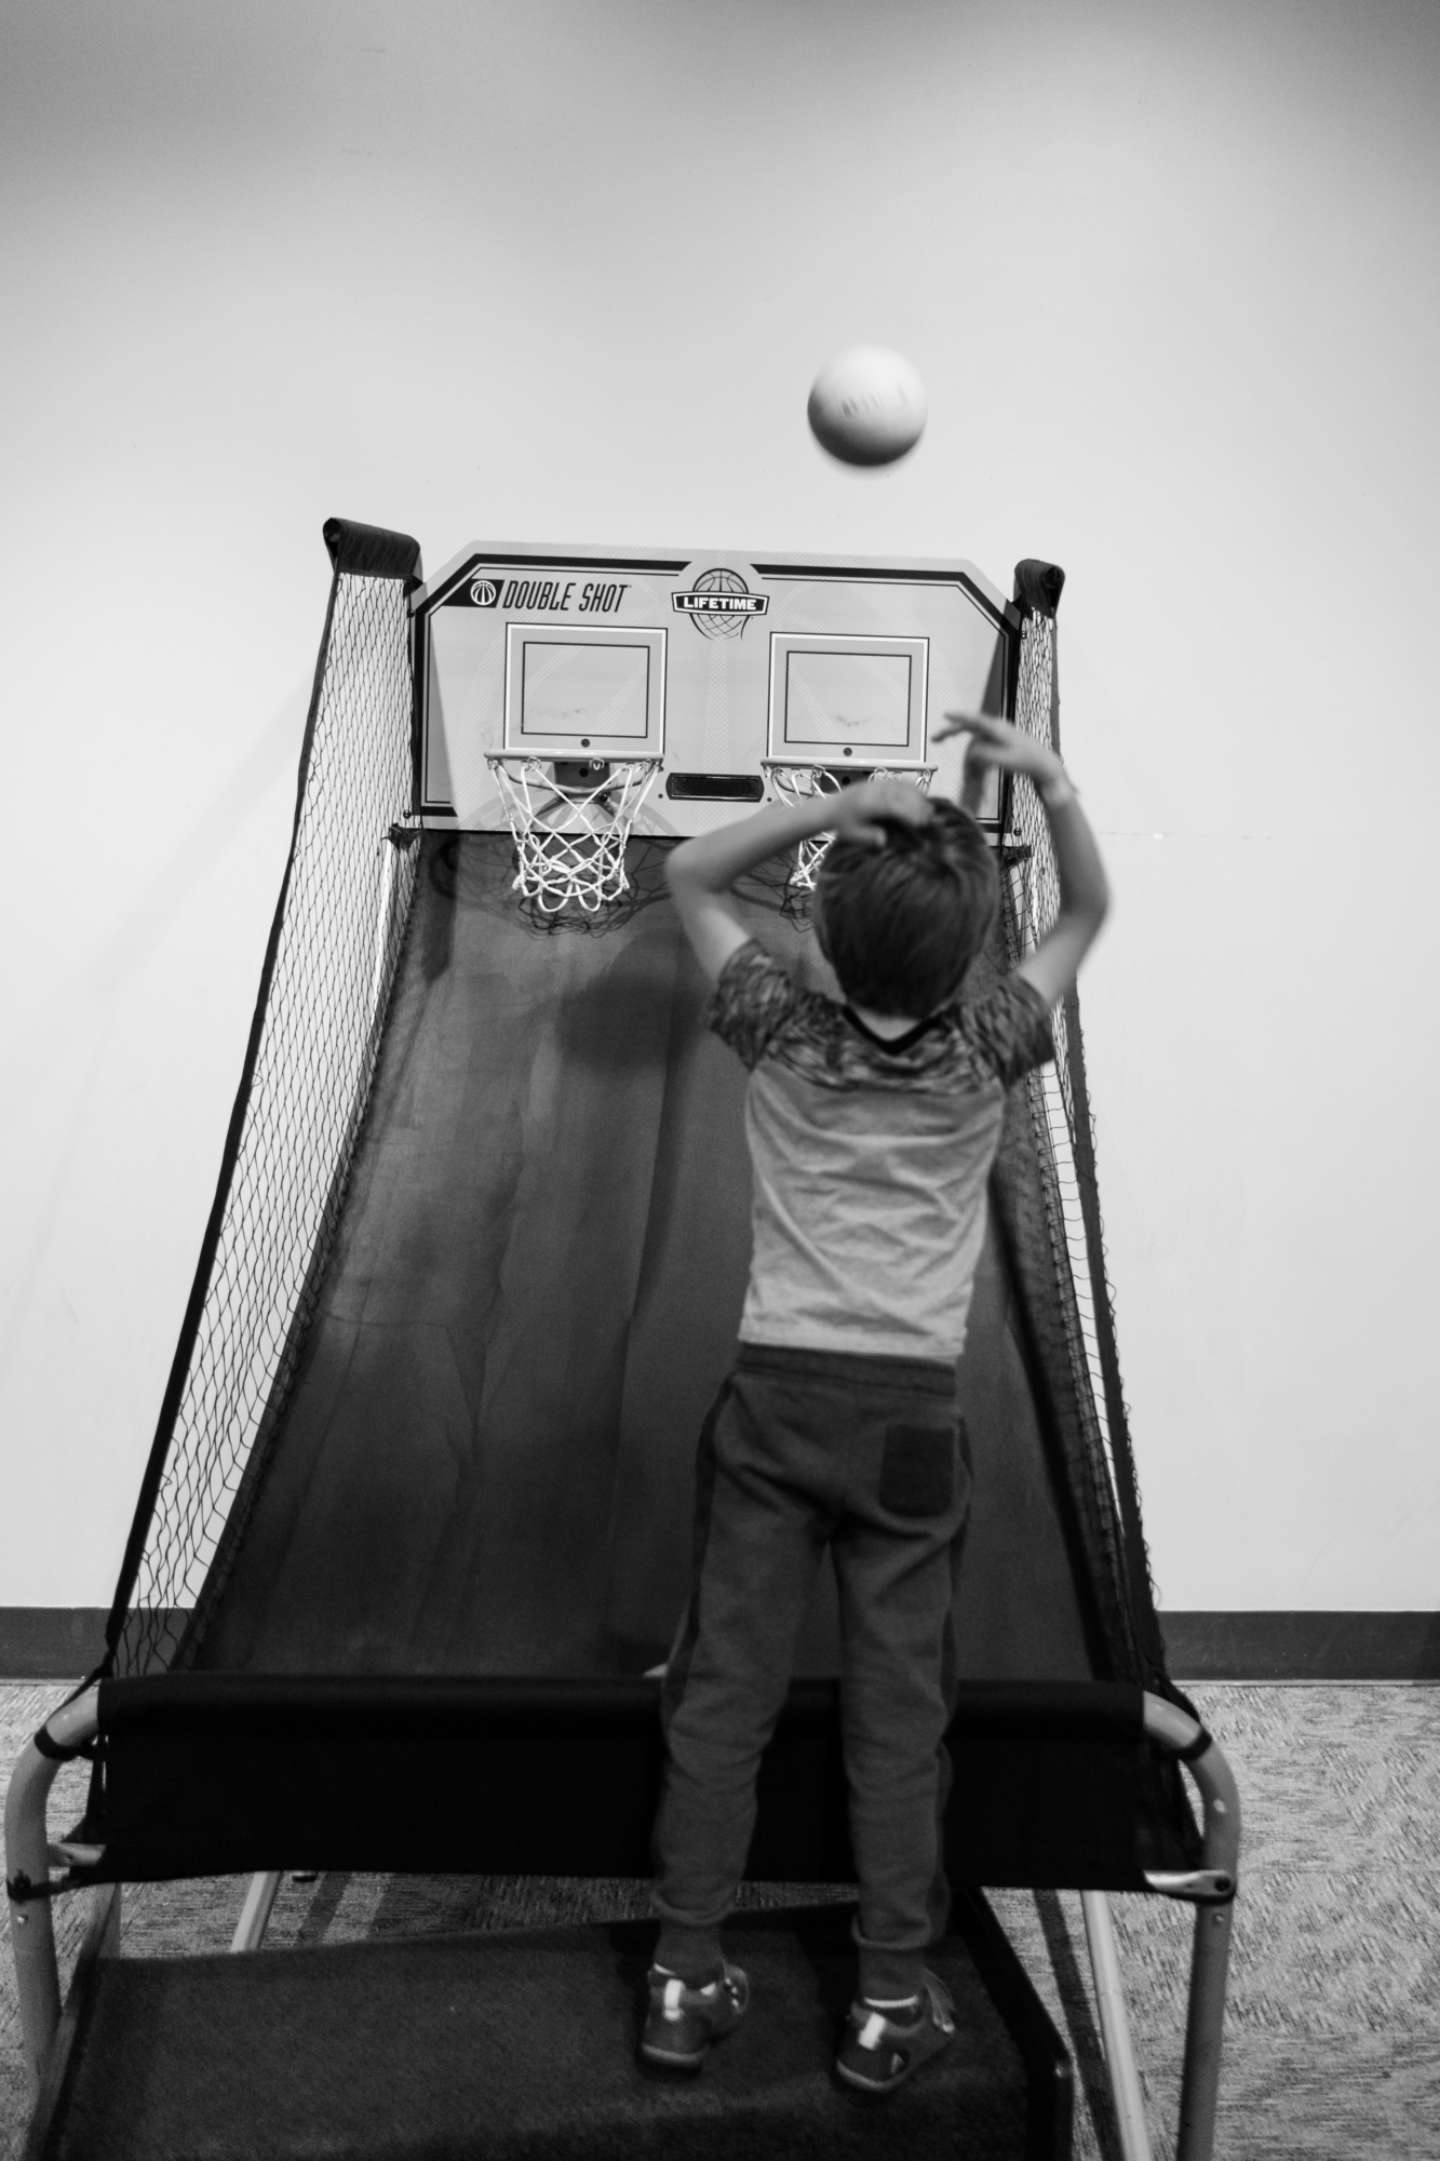 The boy shooting hoops 2017-12-05